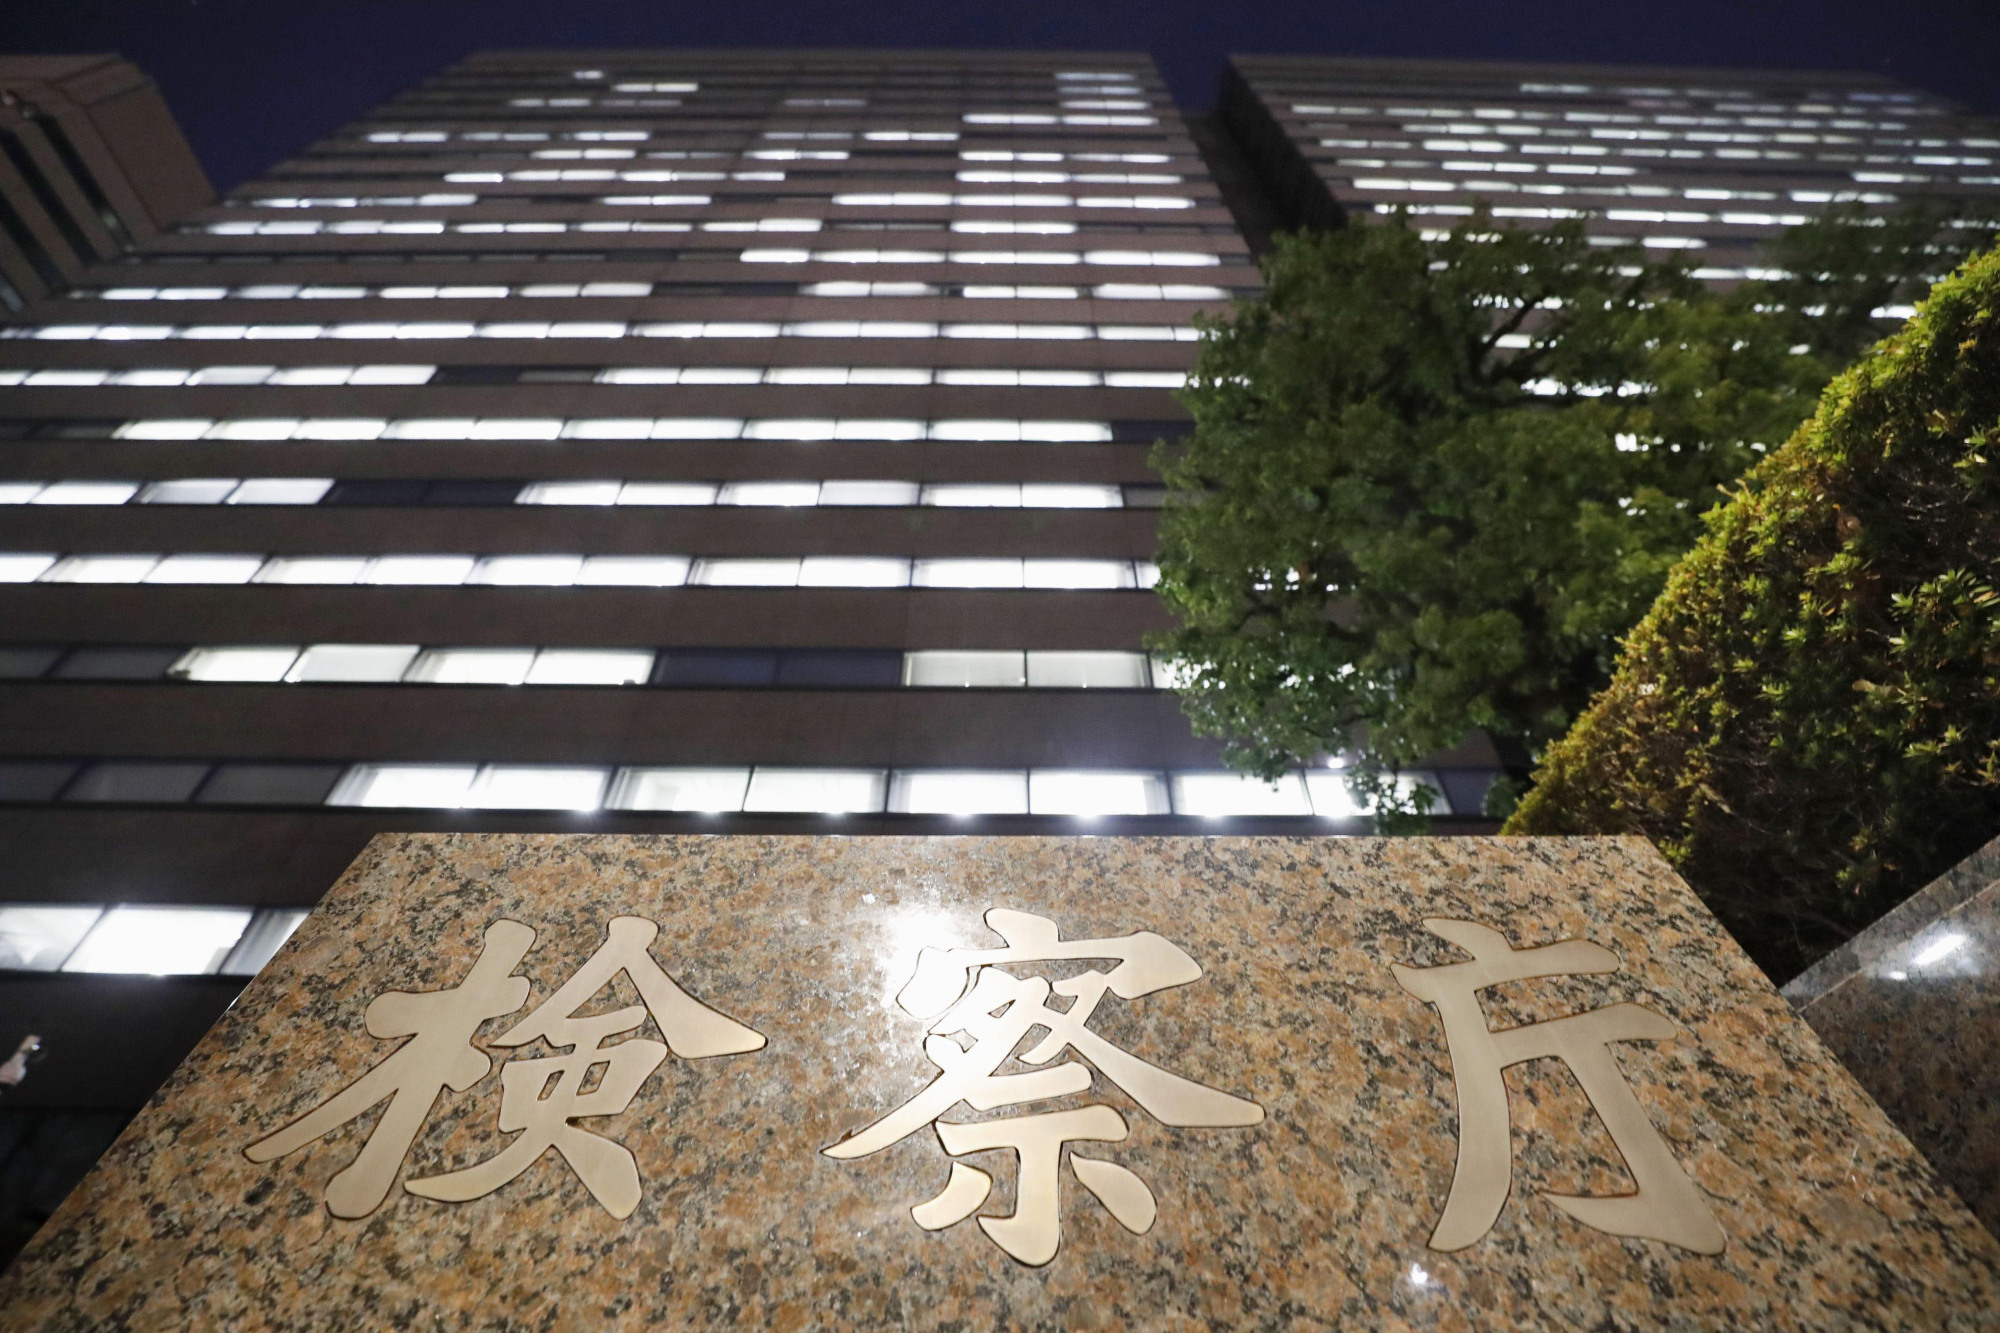 Prime Minister Shinzo Abe's decision to extend the retirement age of one of the top officials at the Public Prosecutor's Office raised questions about the political independence of the body. | KYODO